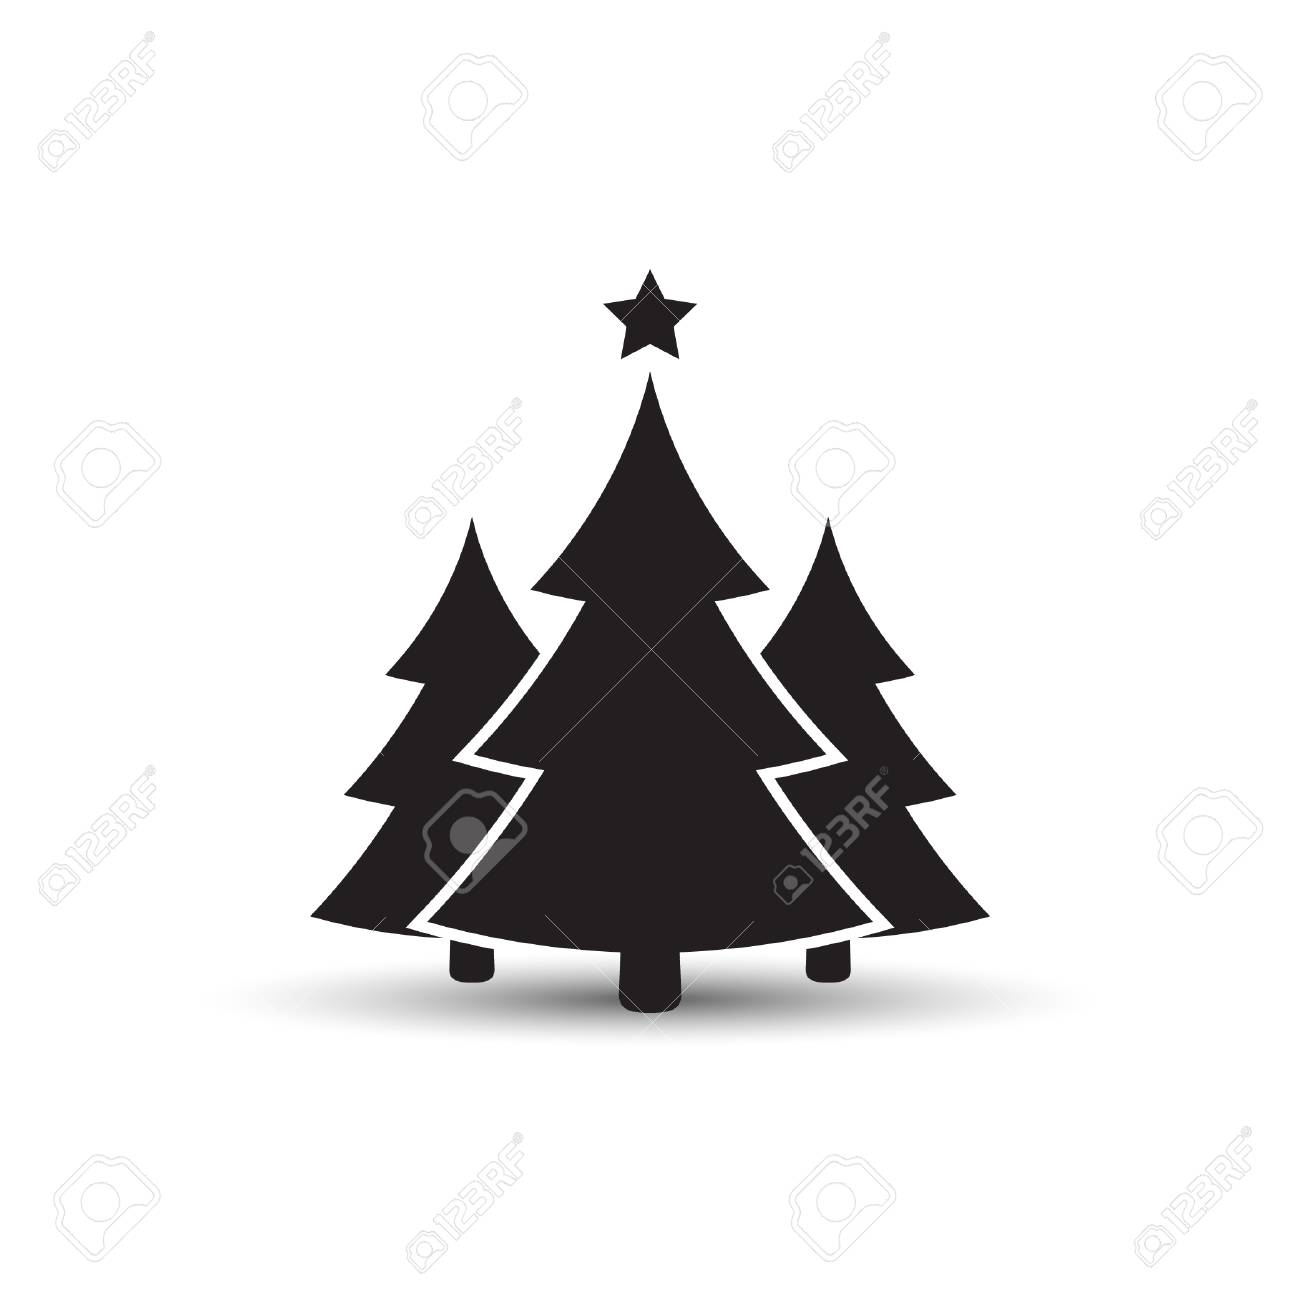 Christmas trees icon, vector simple design. Black symbol of fir,tree,..